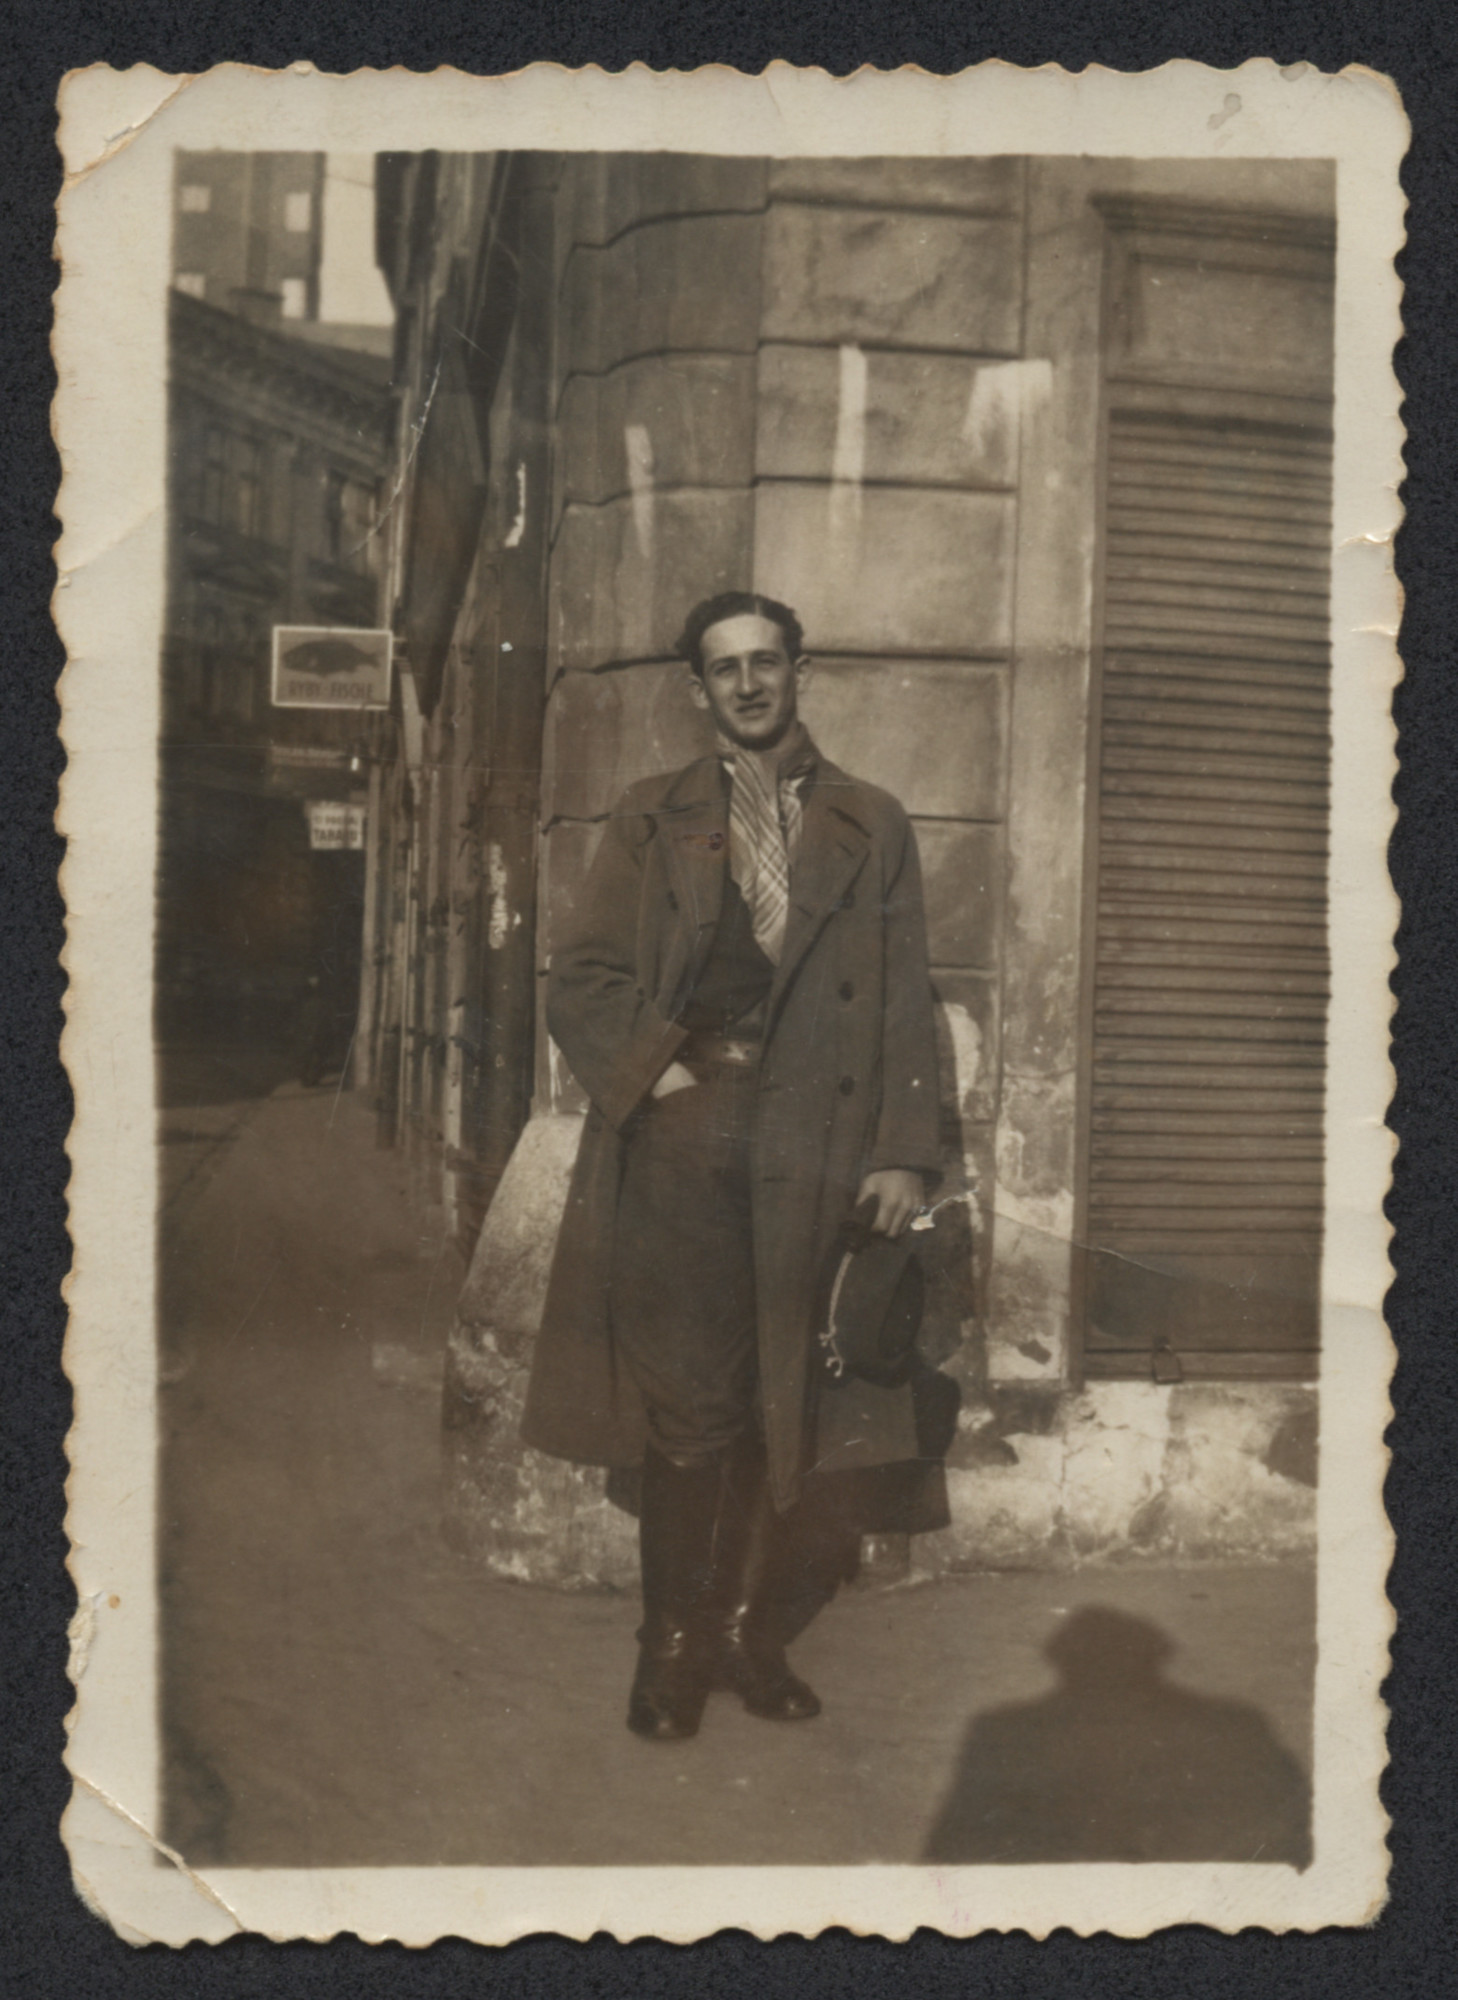 Karl Schwarz poses on a street of Bratislava shortly before leaving the country on the SS Pentcho.